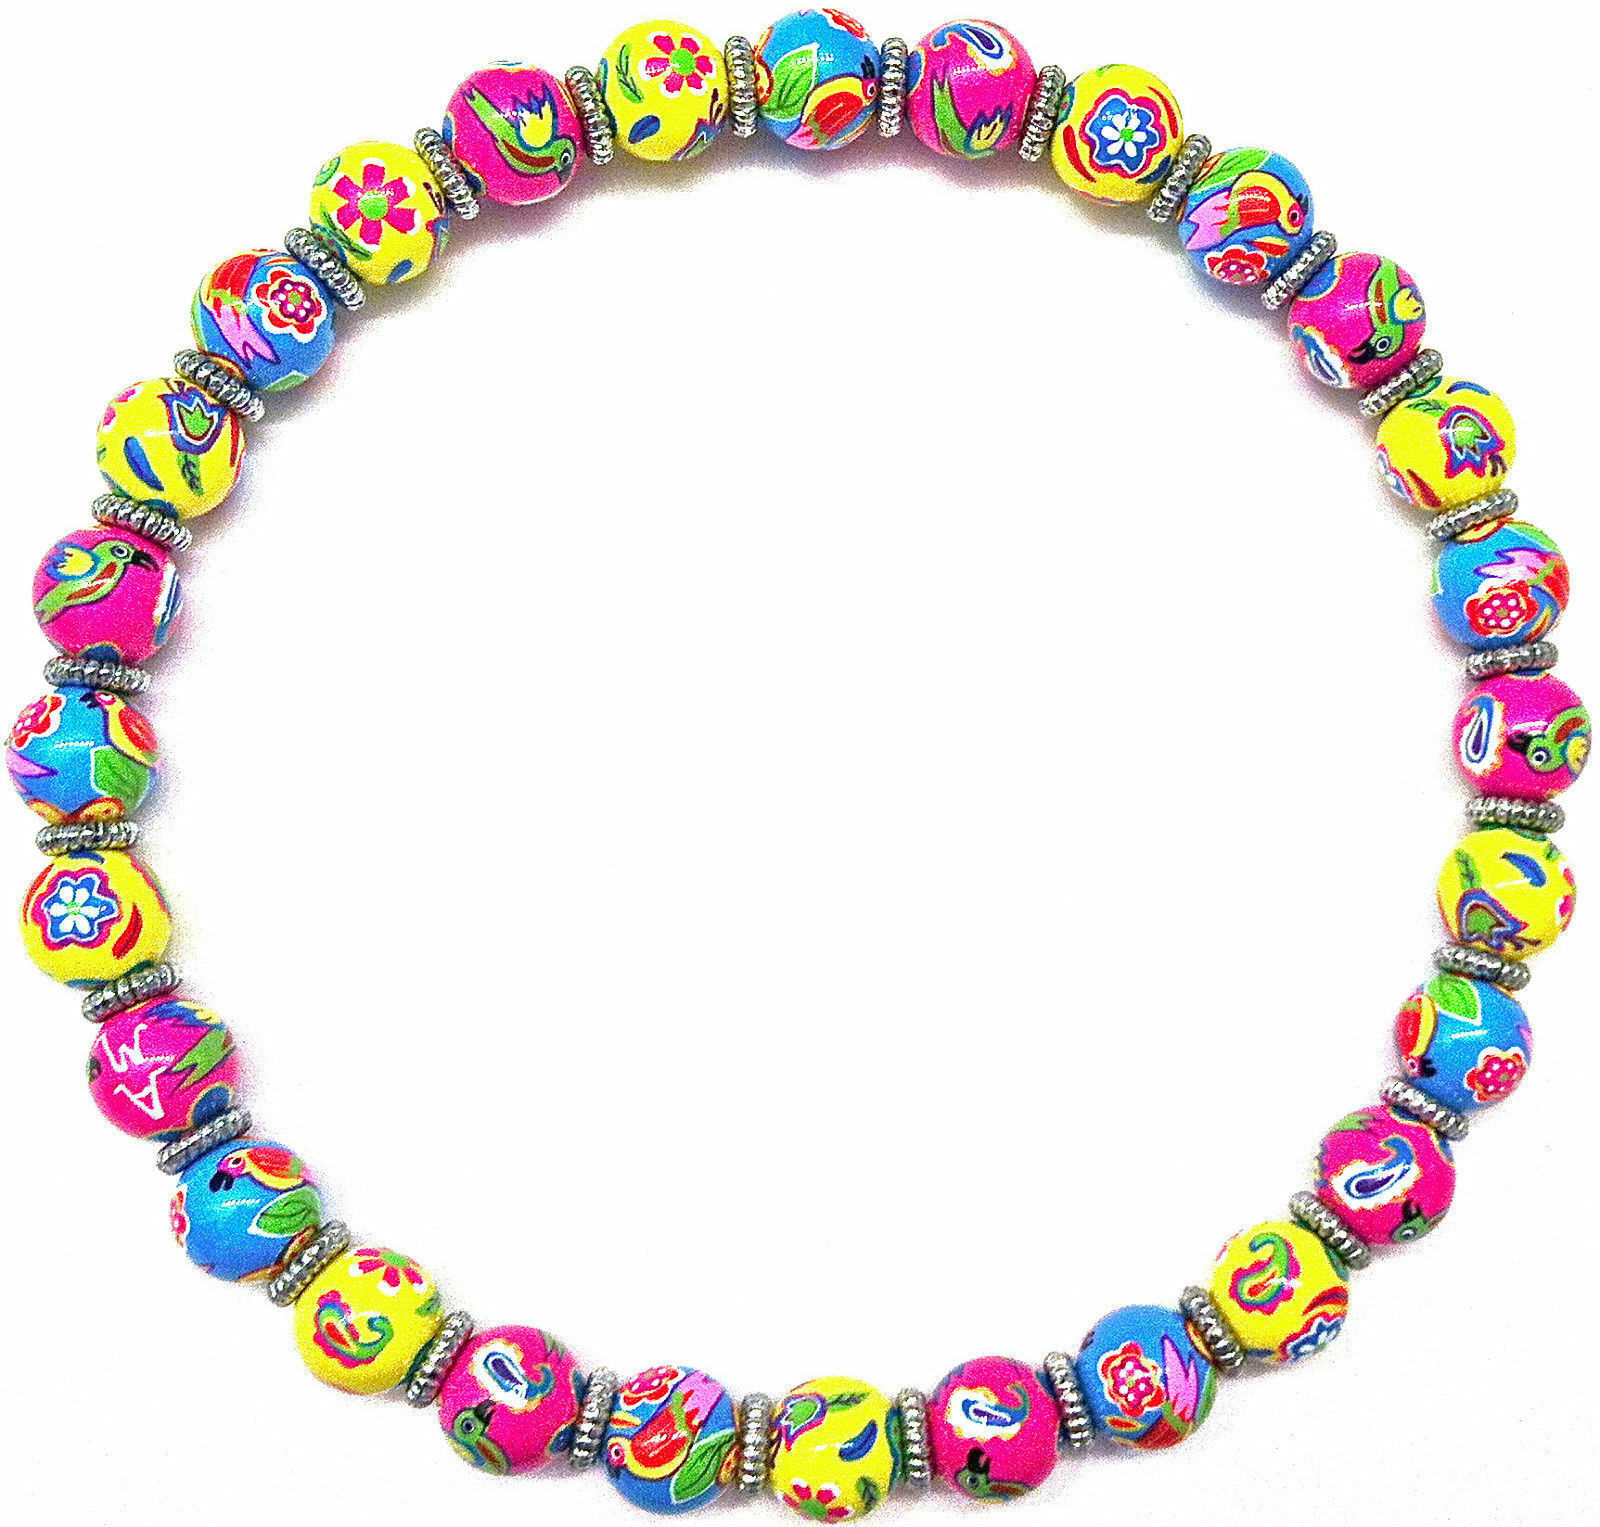 NEW ANGELA MOORE PINK YELLOW BLUE BEADED NECKLACE FLOWERS BIRDS SILVER SPACERS - $49.49